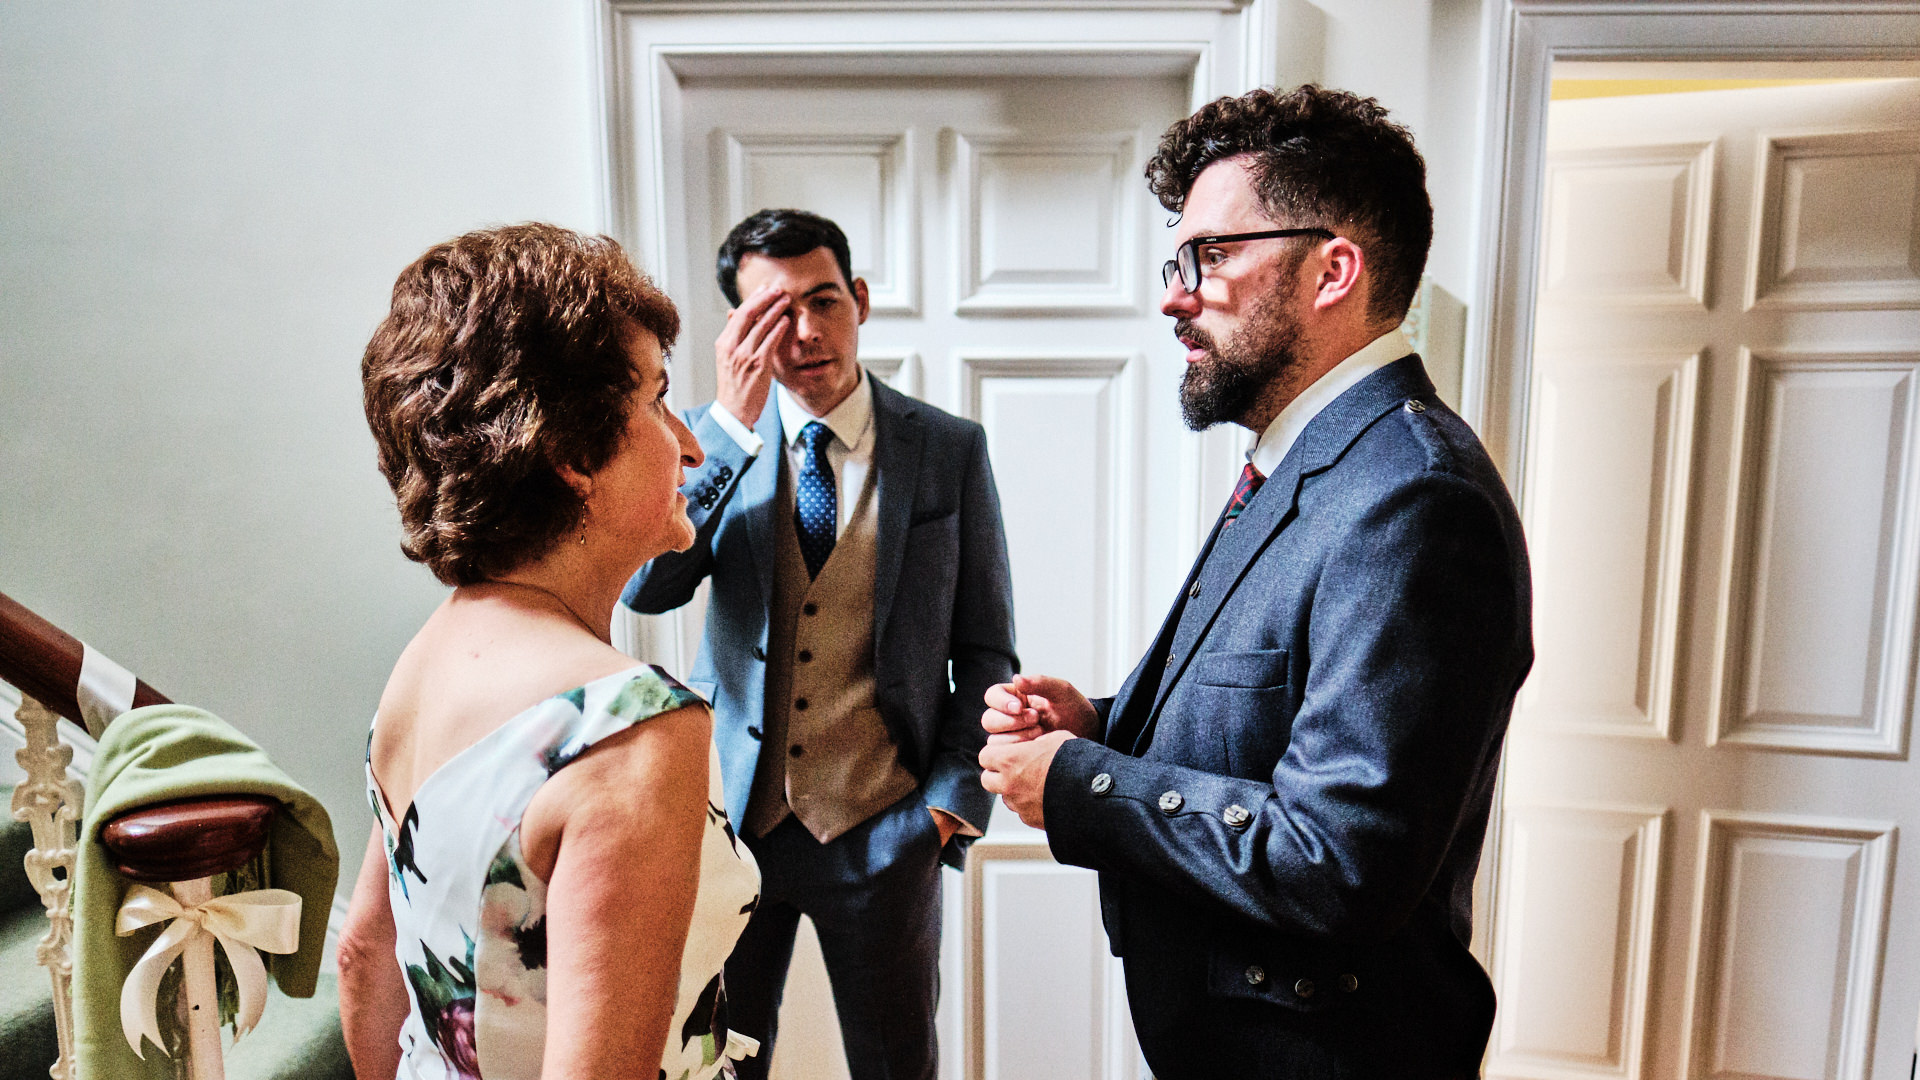 colour photograph of a bride groom and his mother talking on the morning of his wedding day